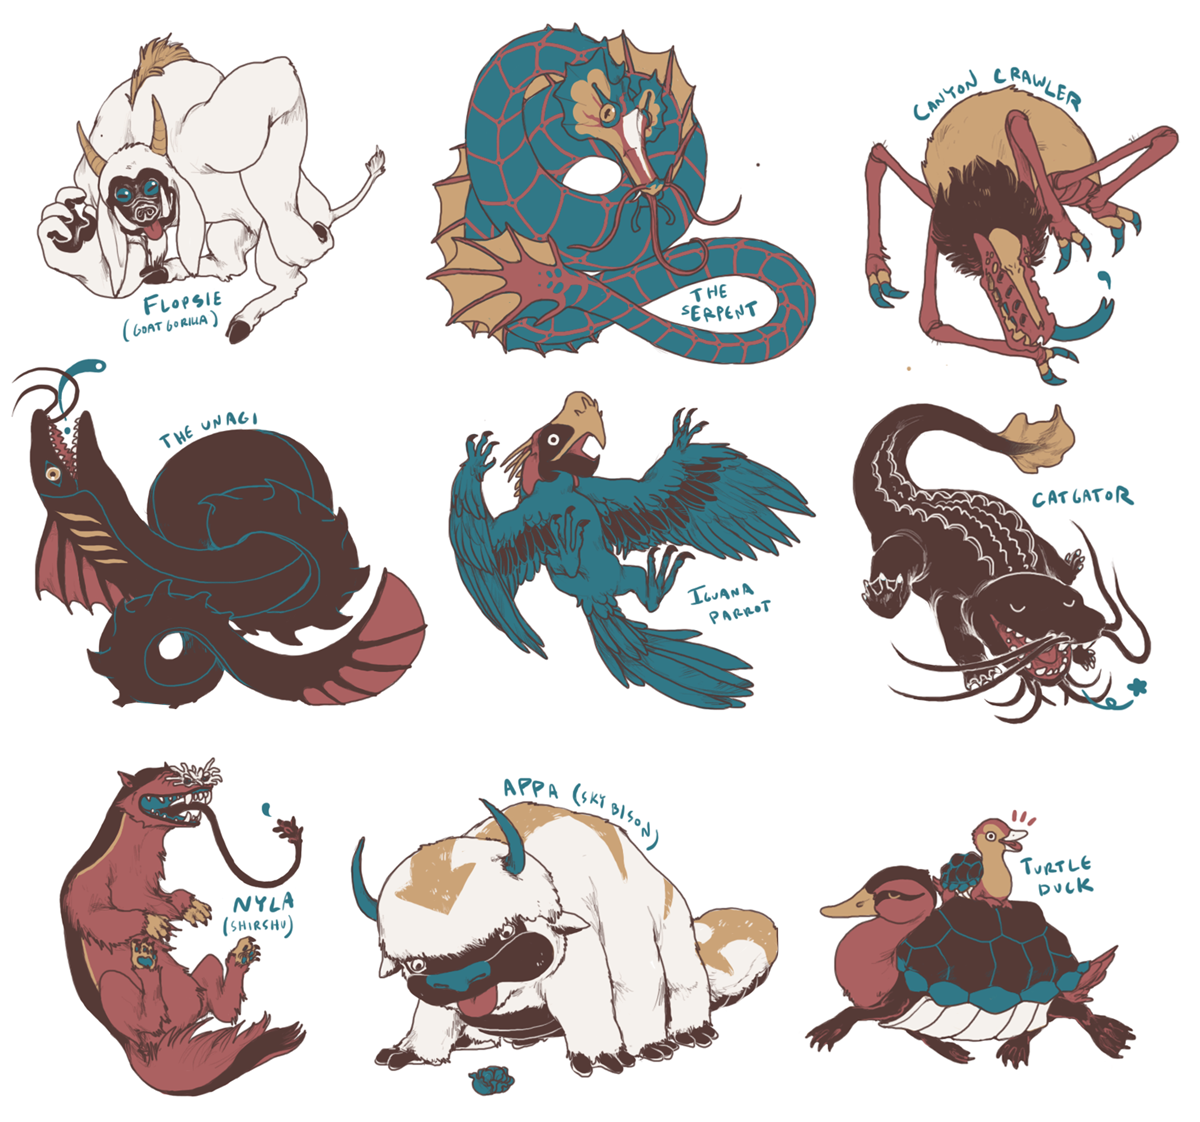 Avatar the last airbender animals  The Last Airbender   The